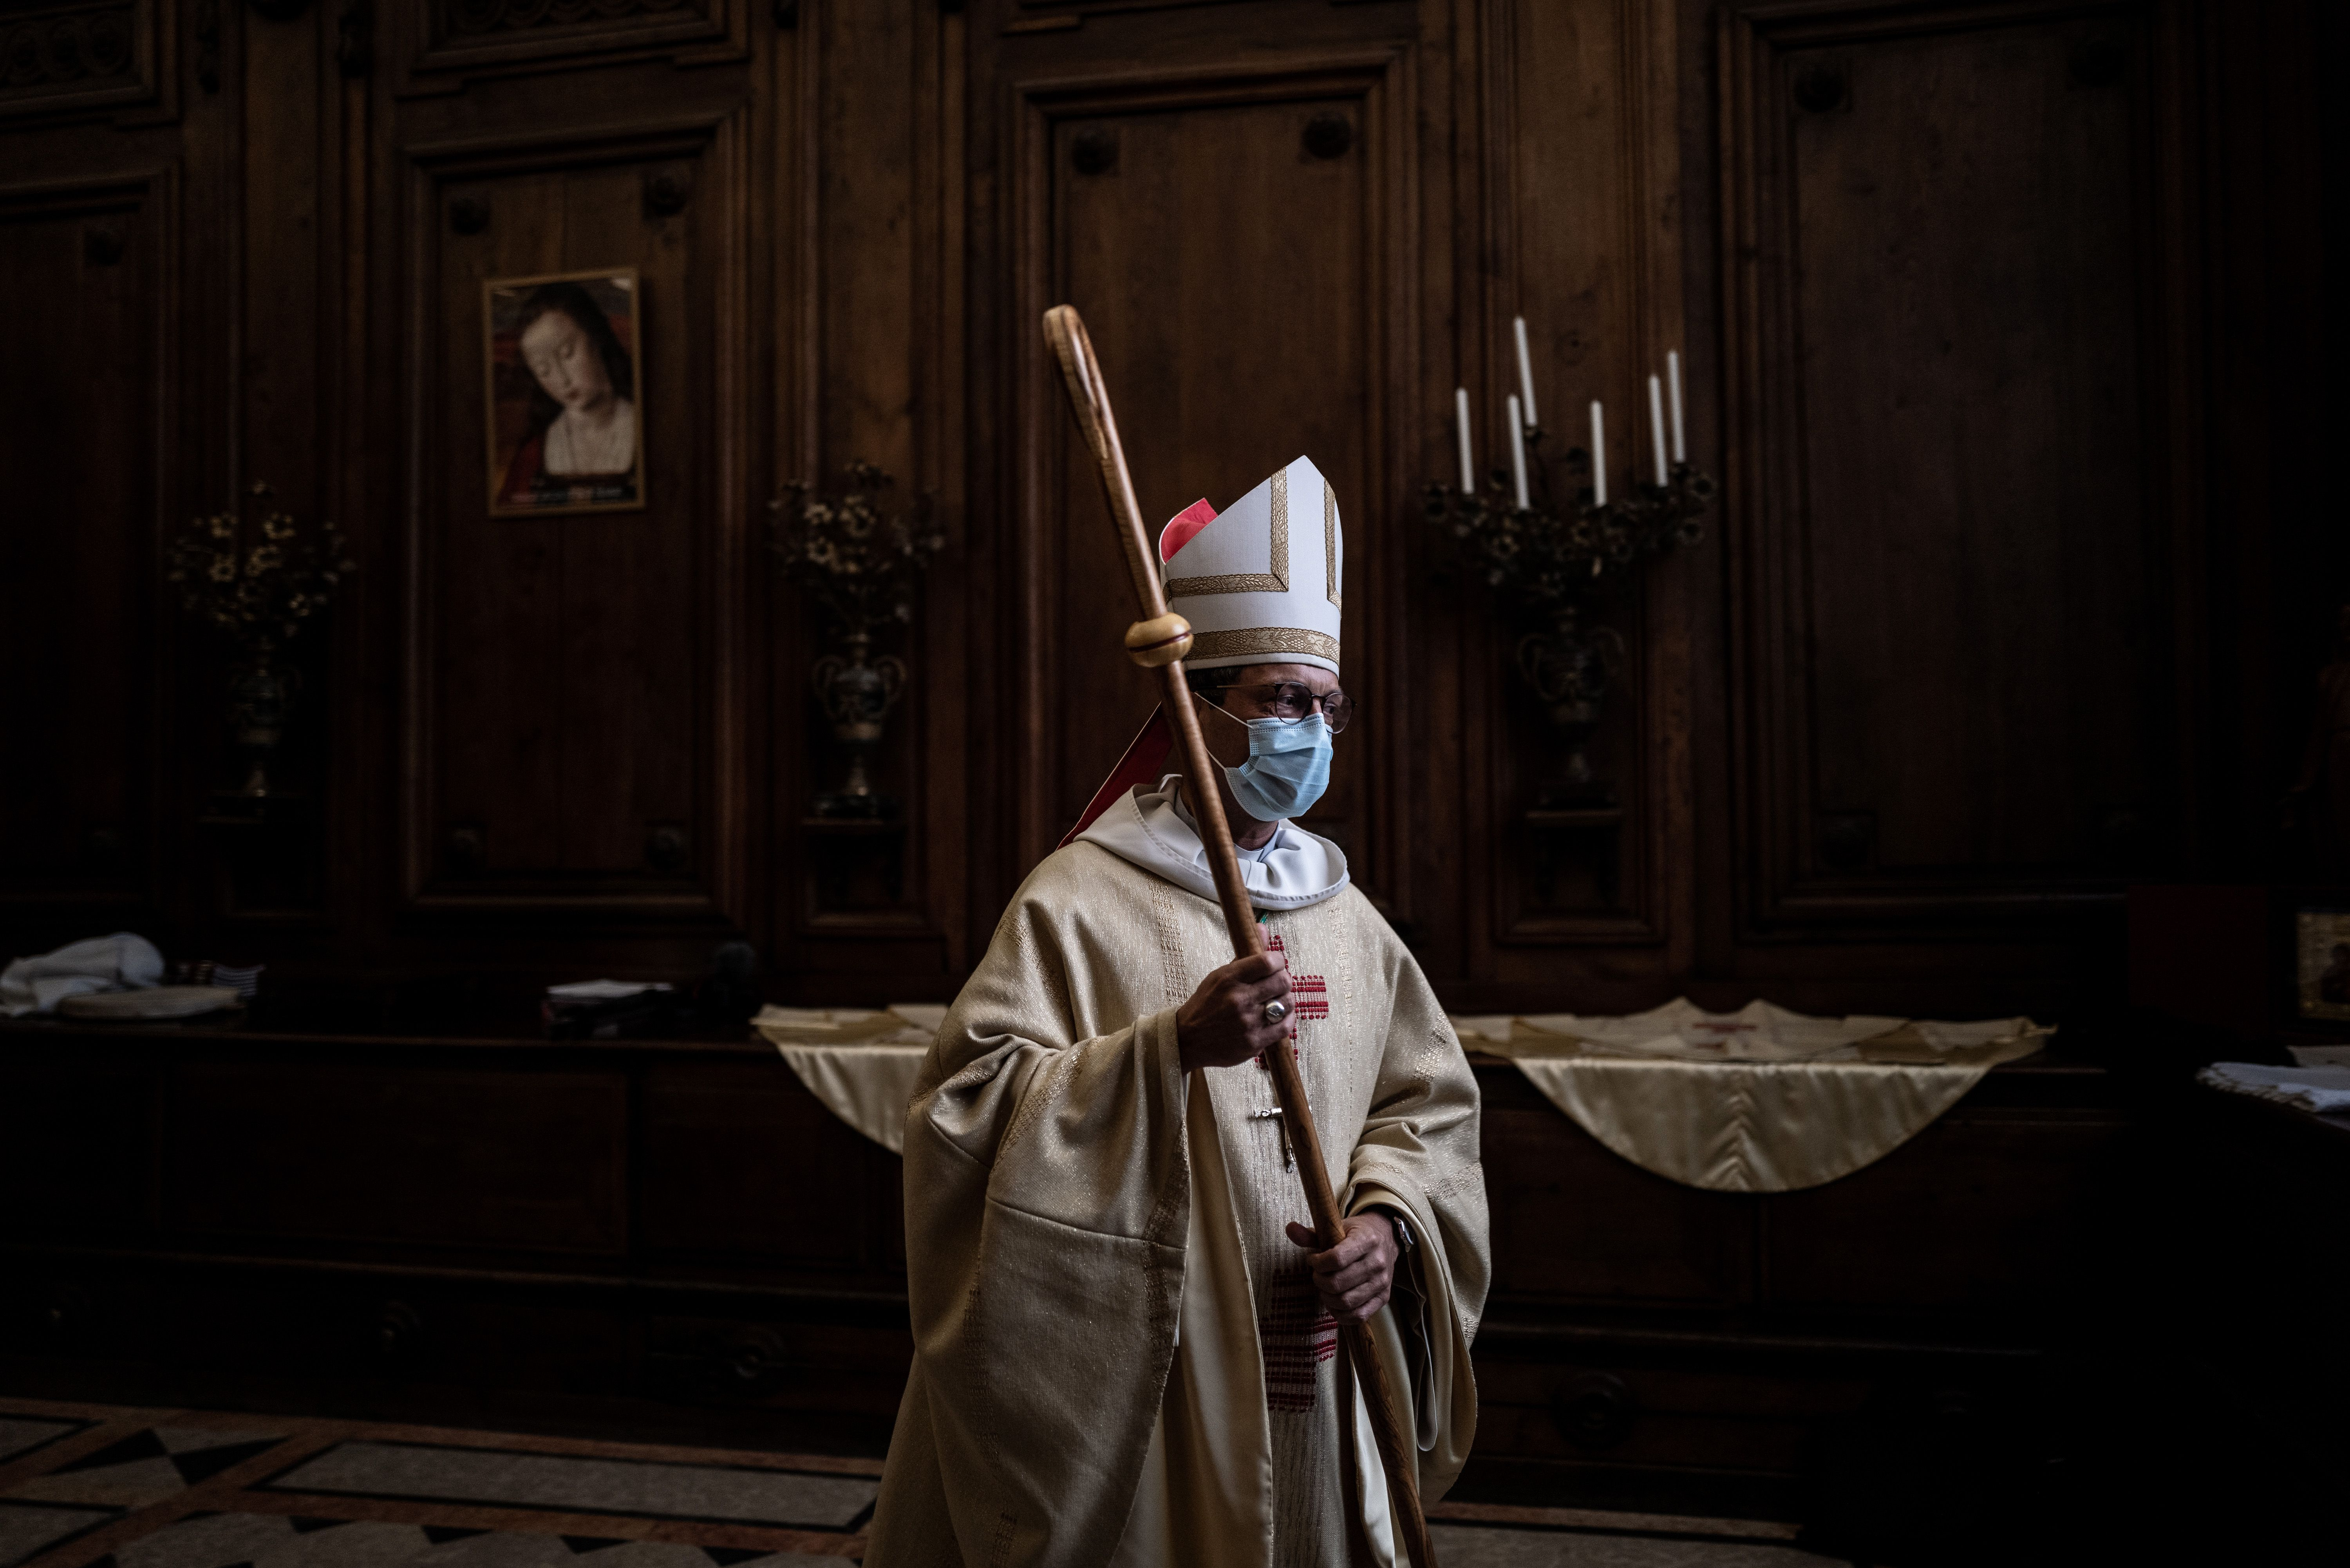 French bishop Monsignor Emmanuel Gobilliard wearing a protective face mask, prepares to lead the first mass in the Lyon Saint-Jean cathedral since the beginning of the lock down due to Covid 19 pandemic, on May 23, 2020. - France went into lockdown on March 17, to curb the spread of COVID-19. (Photo by JEFF PACHOUD / AFP) (Photo by JEFF PACHOUD/AFP via Getty Images)